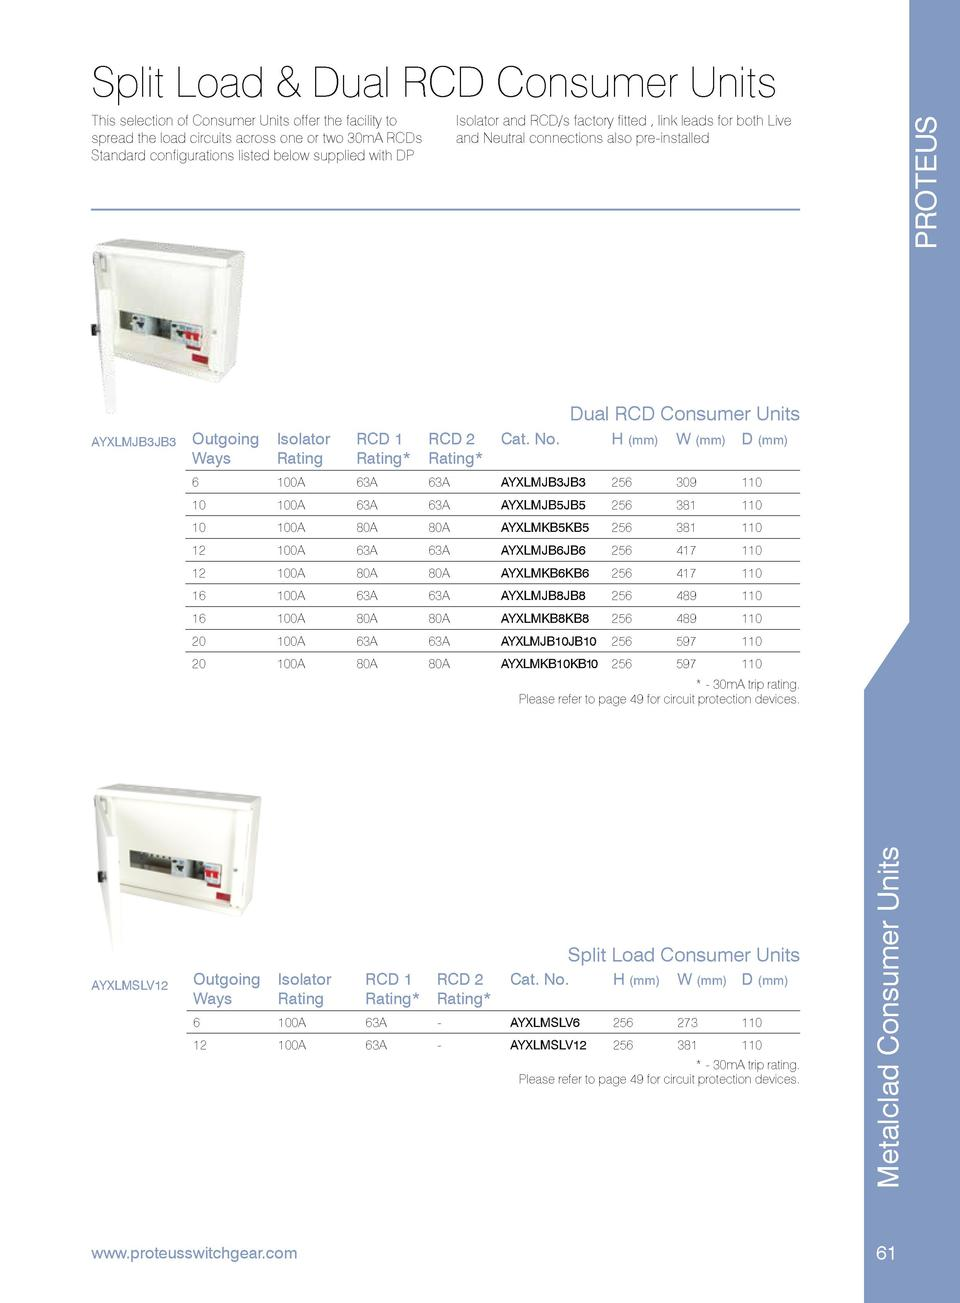 Dual Rcd Wiring Diagram Diagramselectrical Photosmovies Photo Albums Electric Luxury Consumer Unit Sketch Electrical And